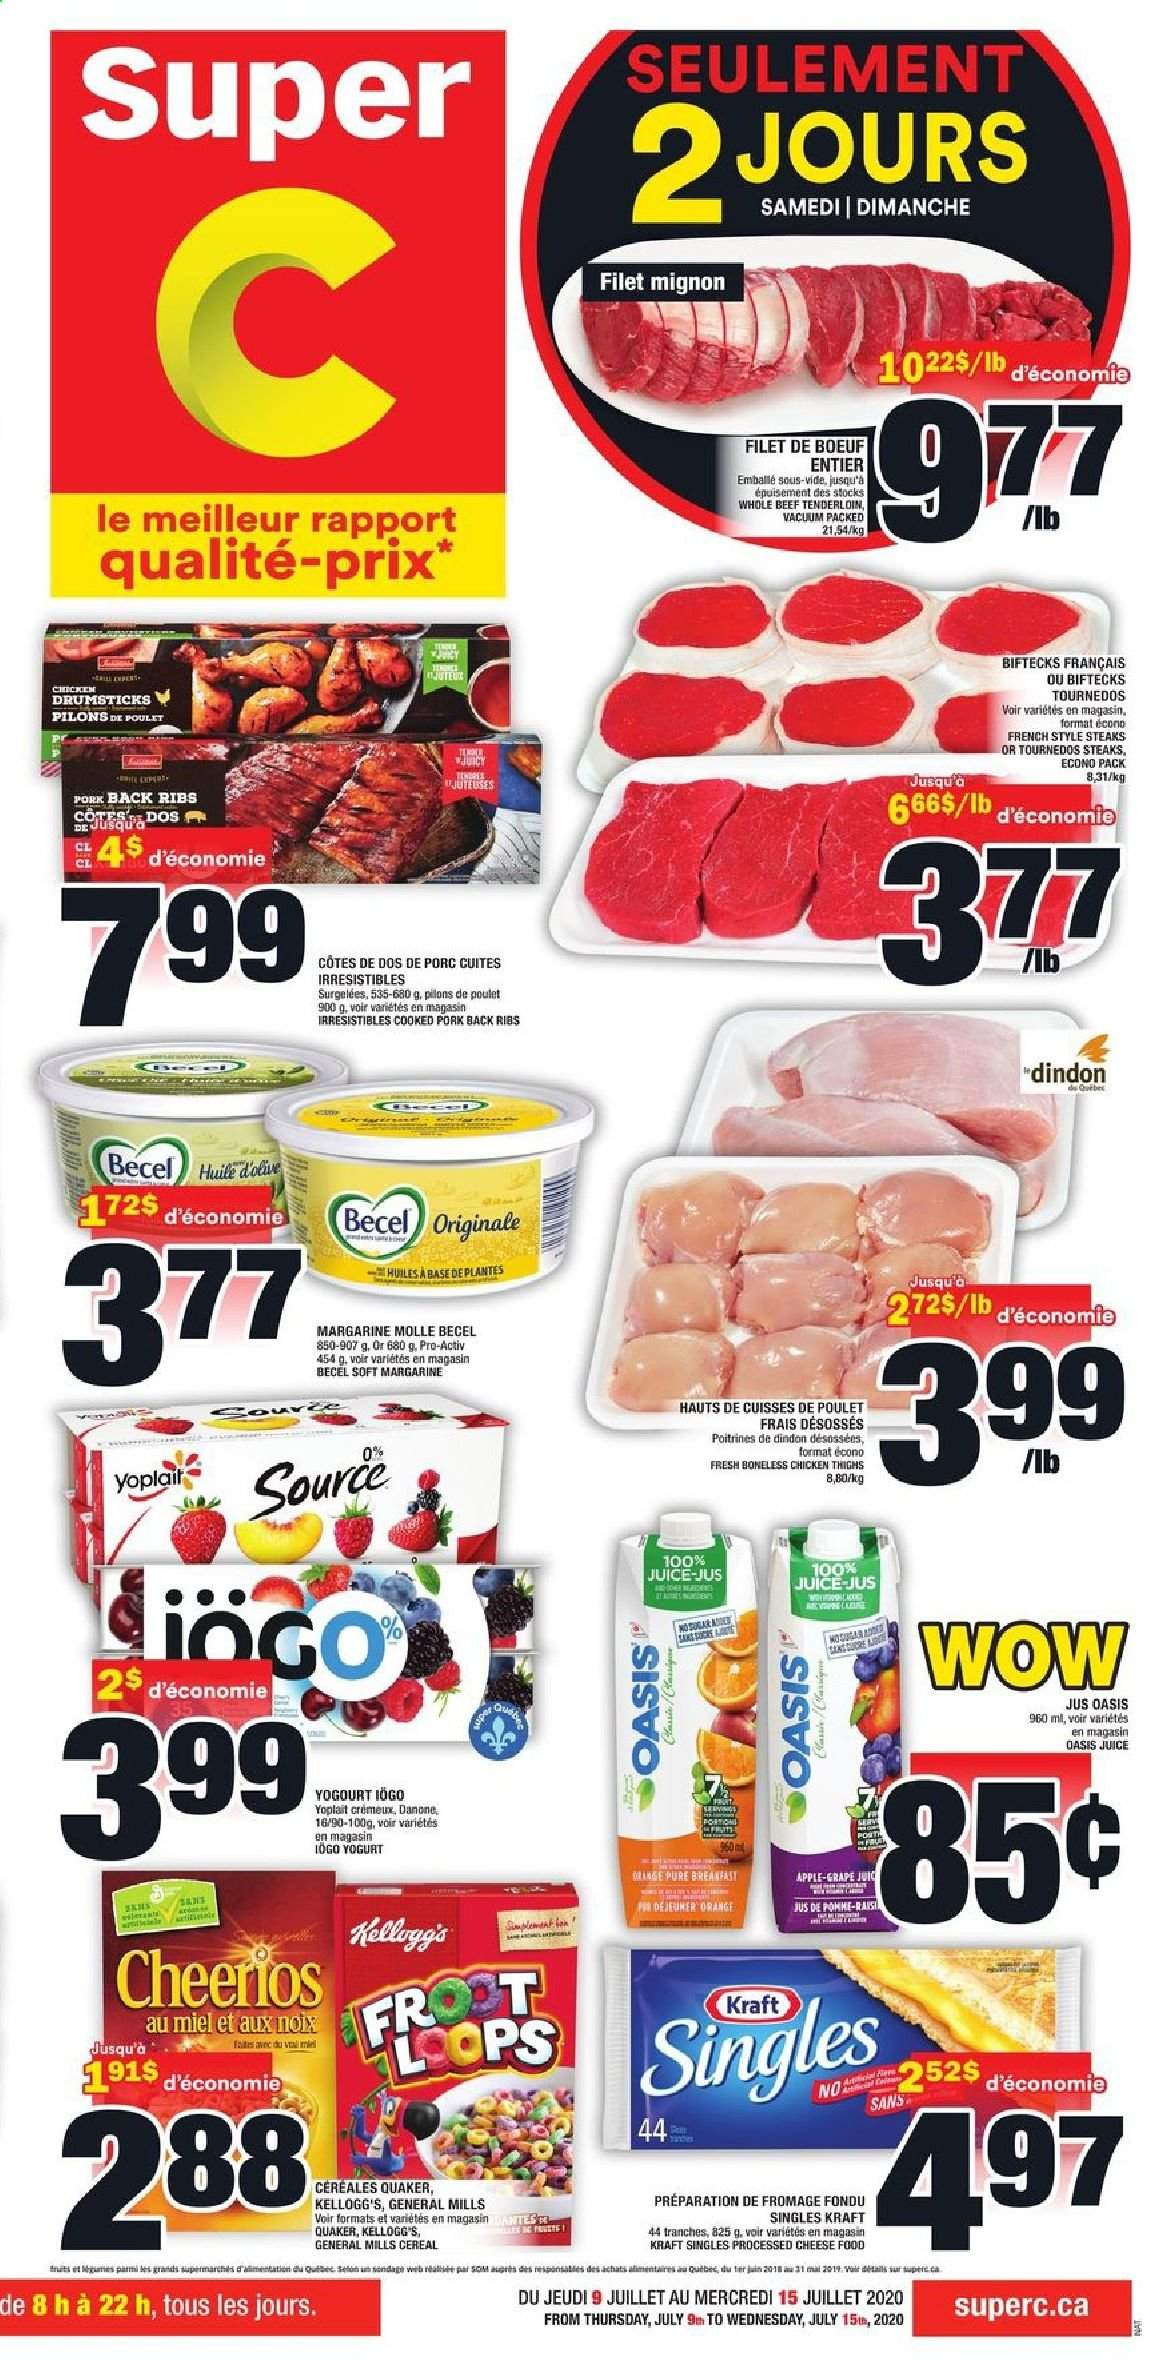 Super C Flyer - July 09, 2020 - July 15, 2020 - Sales products - apples, beef meat, cereals, grapes, margarine, vacuum, yogurt, pork meat, cheerios, chicken, chicken drumsticks, chicken thighs, tenderloin, cheese, juice, beef tenderloin, cereal, danone, ribs, poulet, pommes, porc, base, bœuf, filet mignon, fromage, huile, sucre, kellogg's, miel, noix, orange, jus, fruits. Page 1.